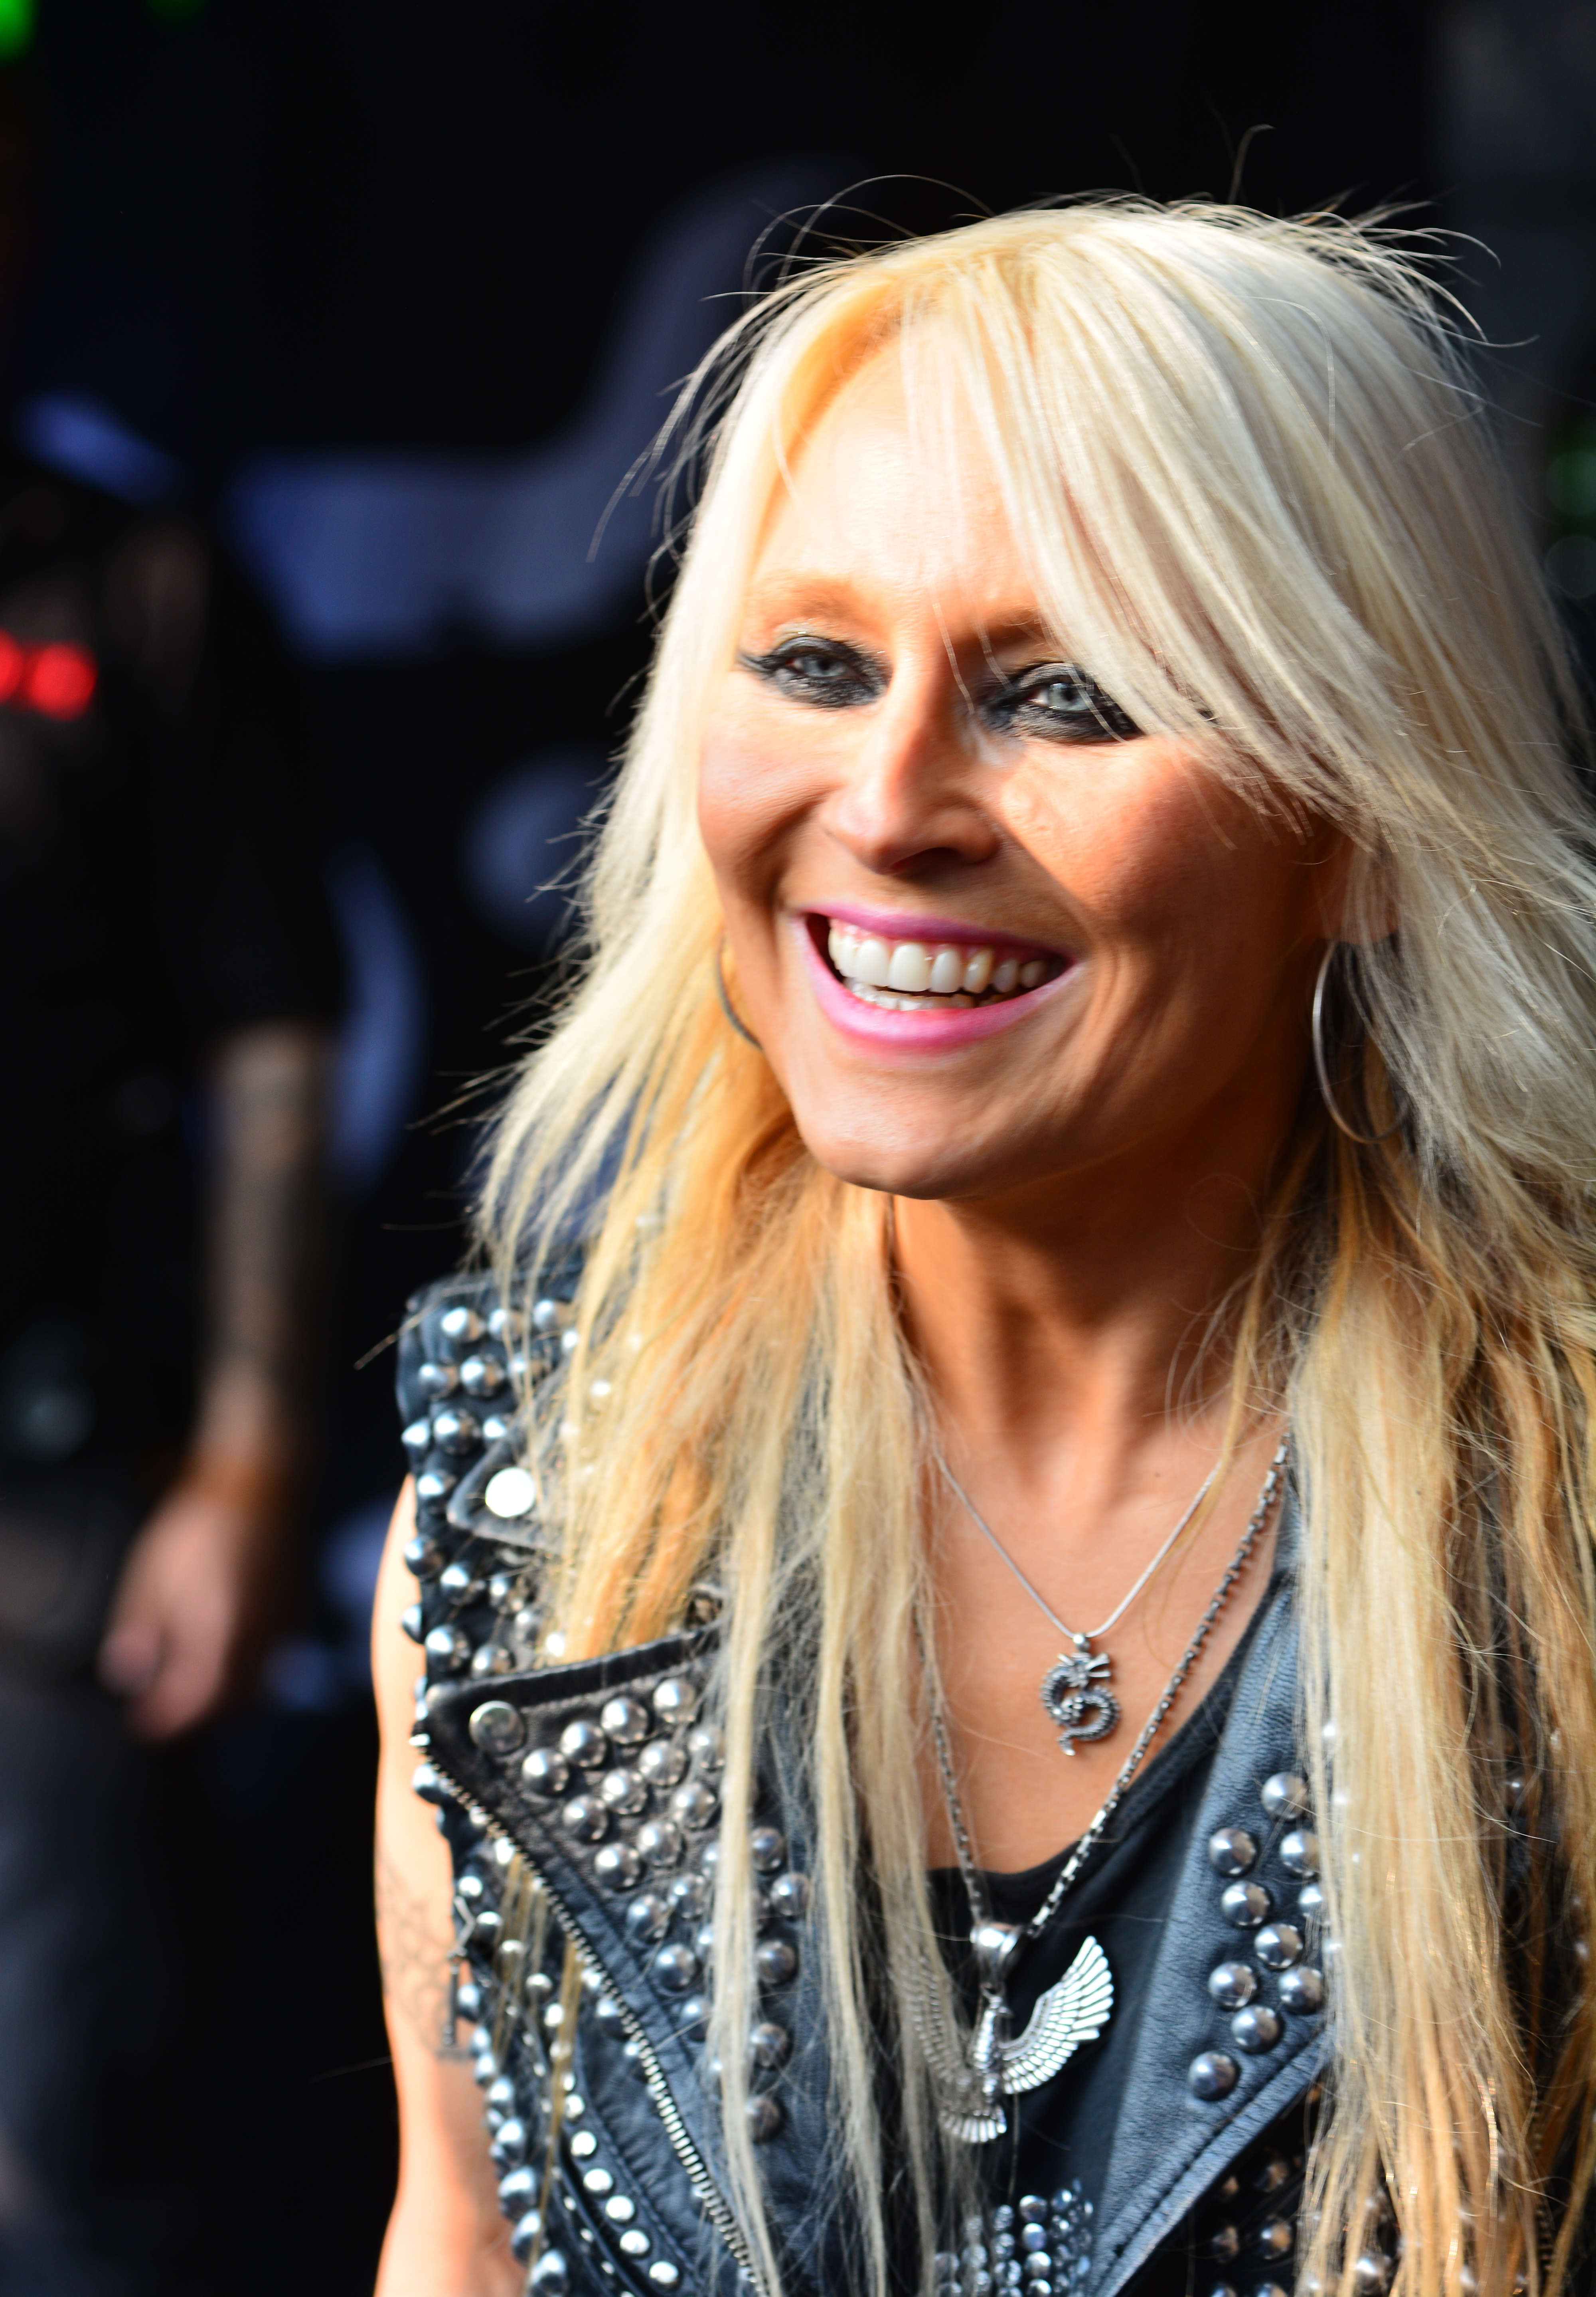 Doro  Any Way To Make The Ring Tone Louder